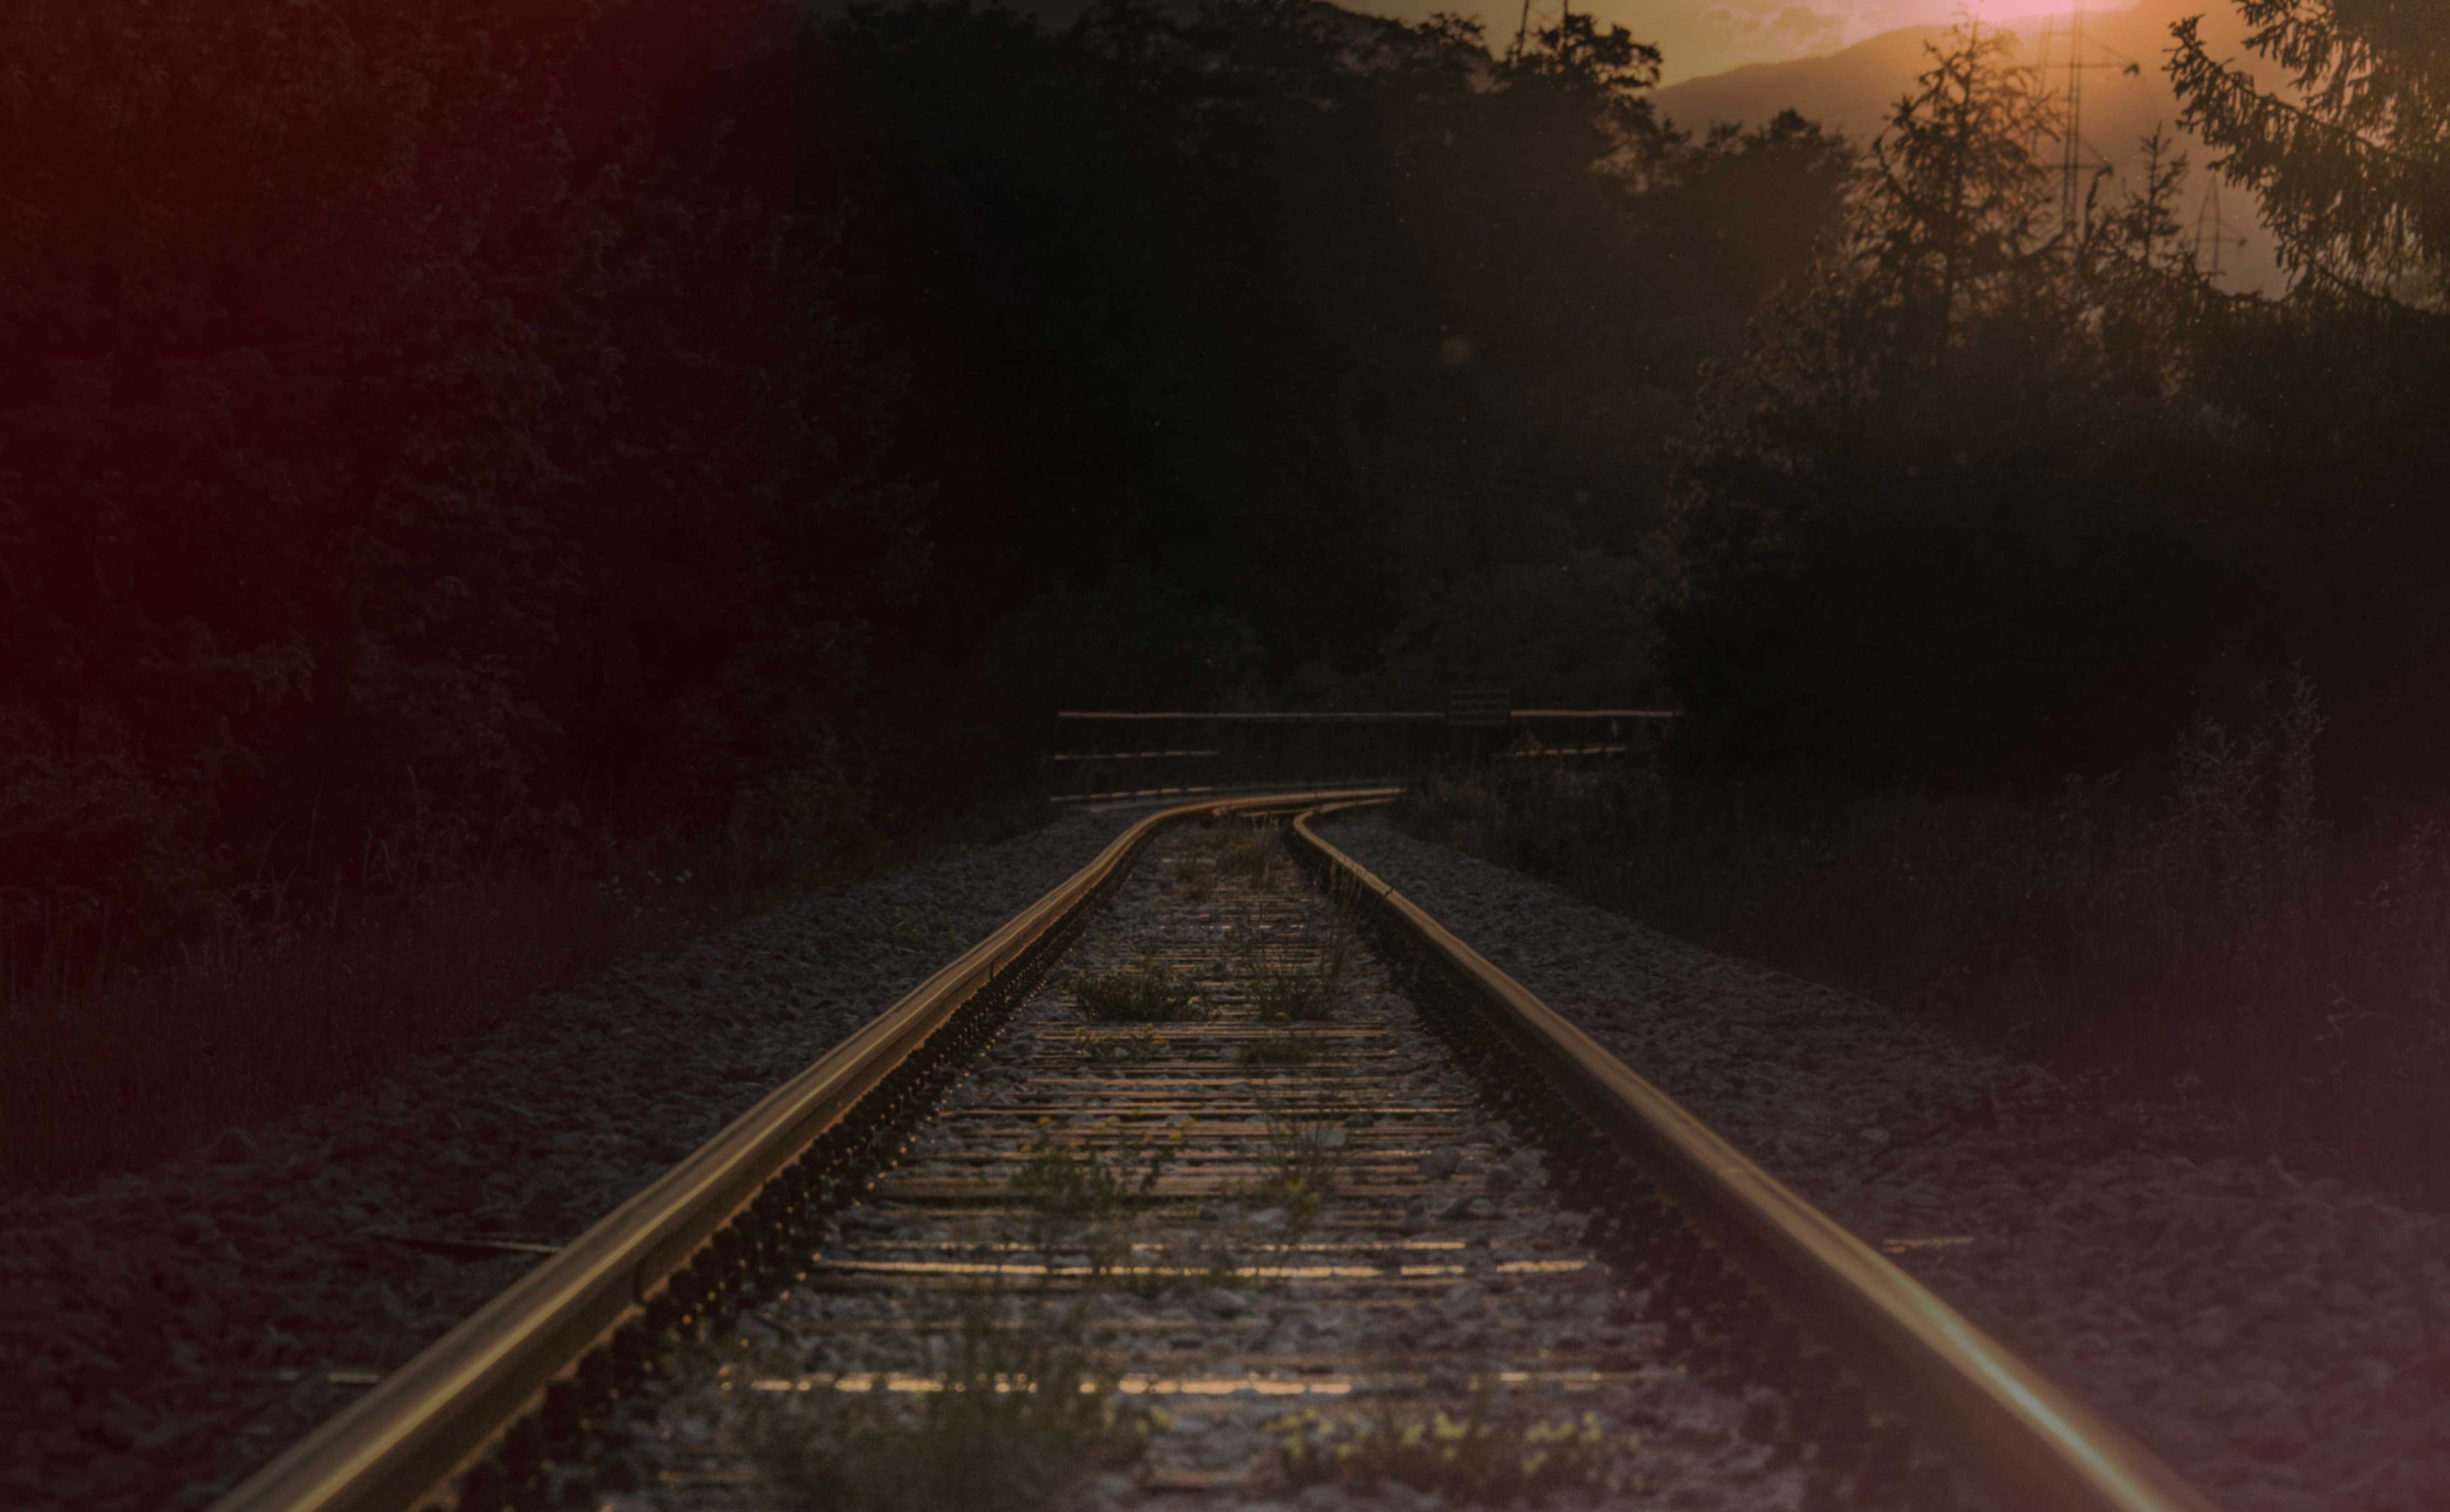 Centrail Railway Manufacturing Designs Develops and Delivers the best electronic railway systems